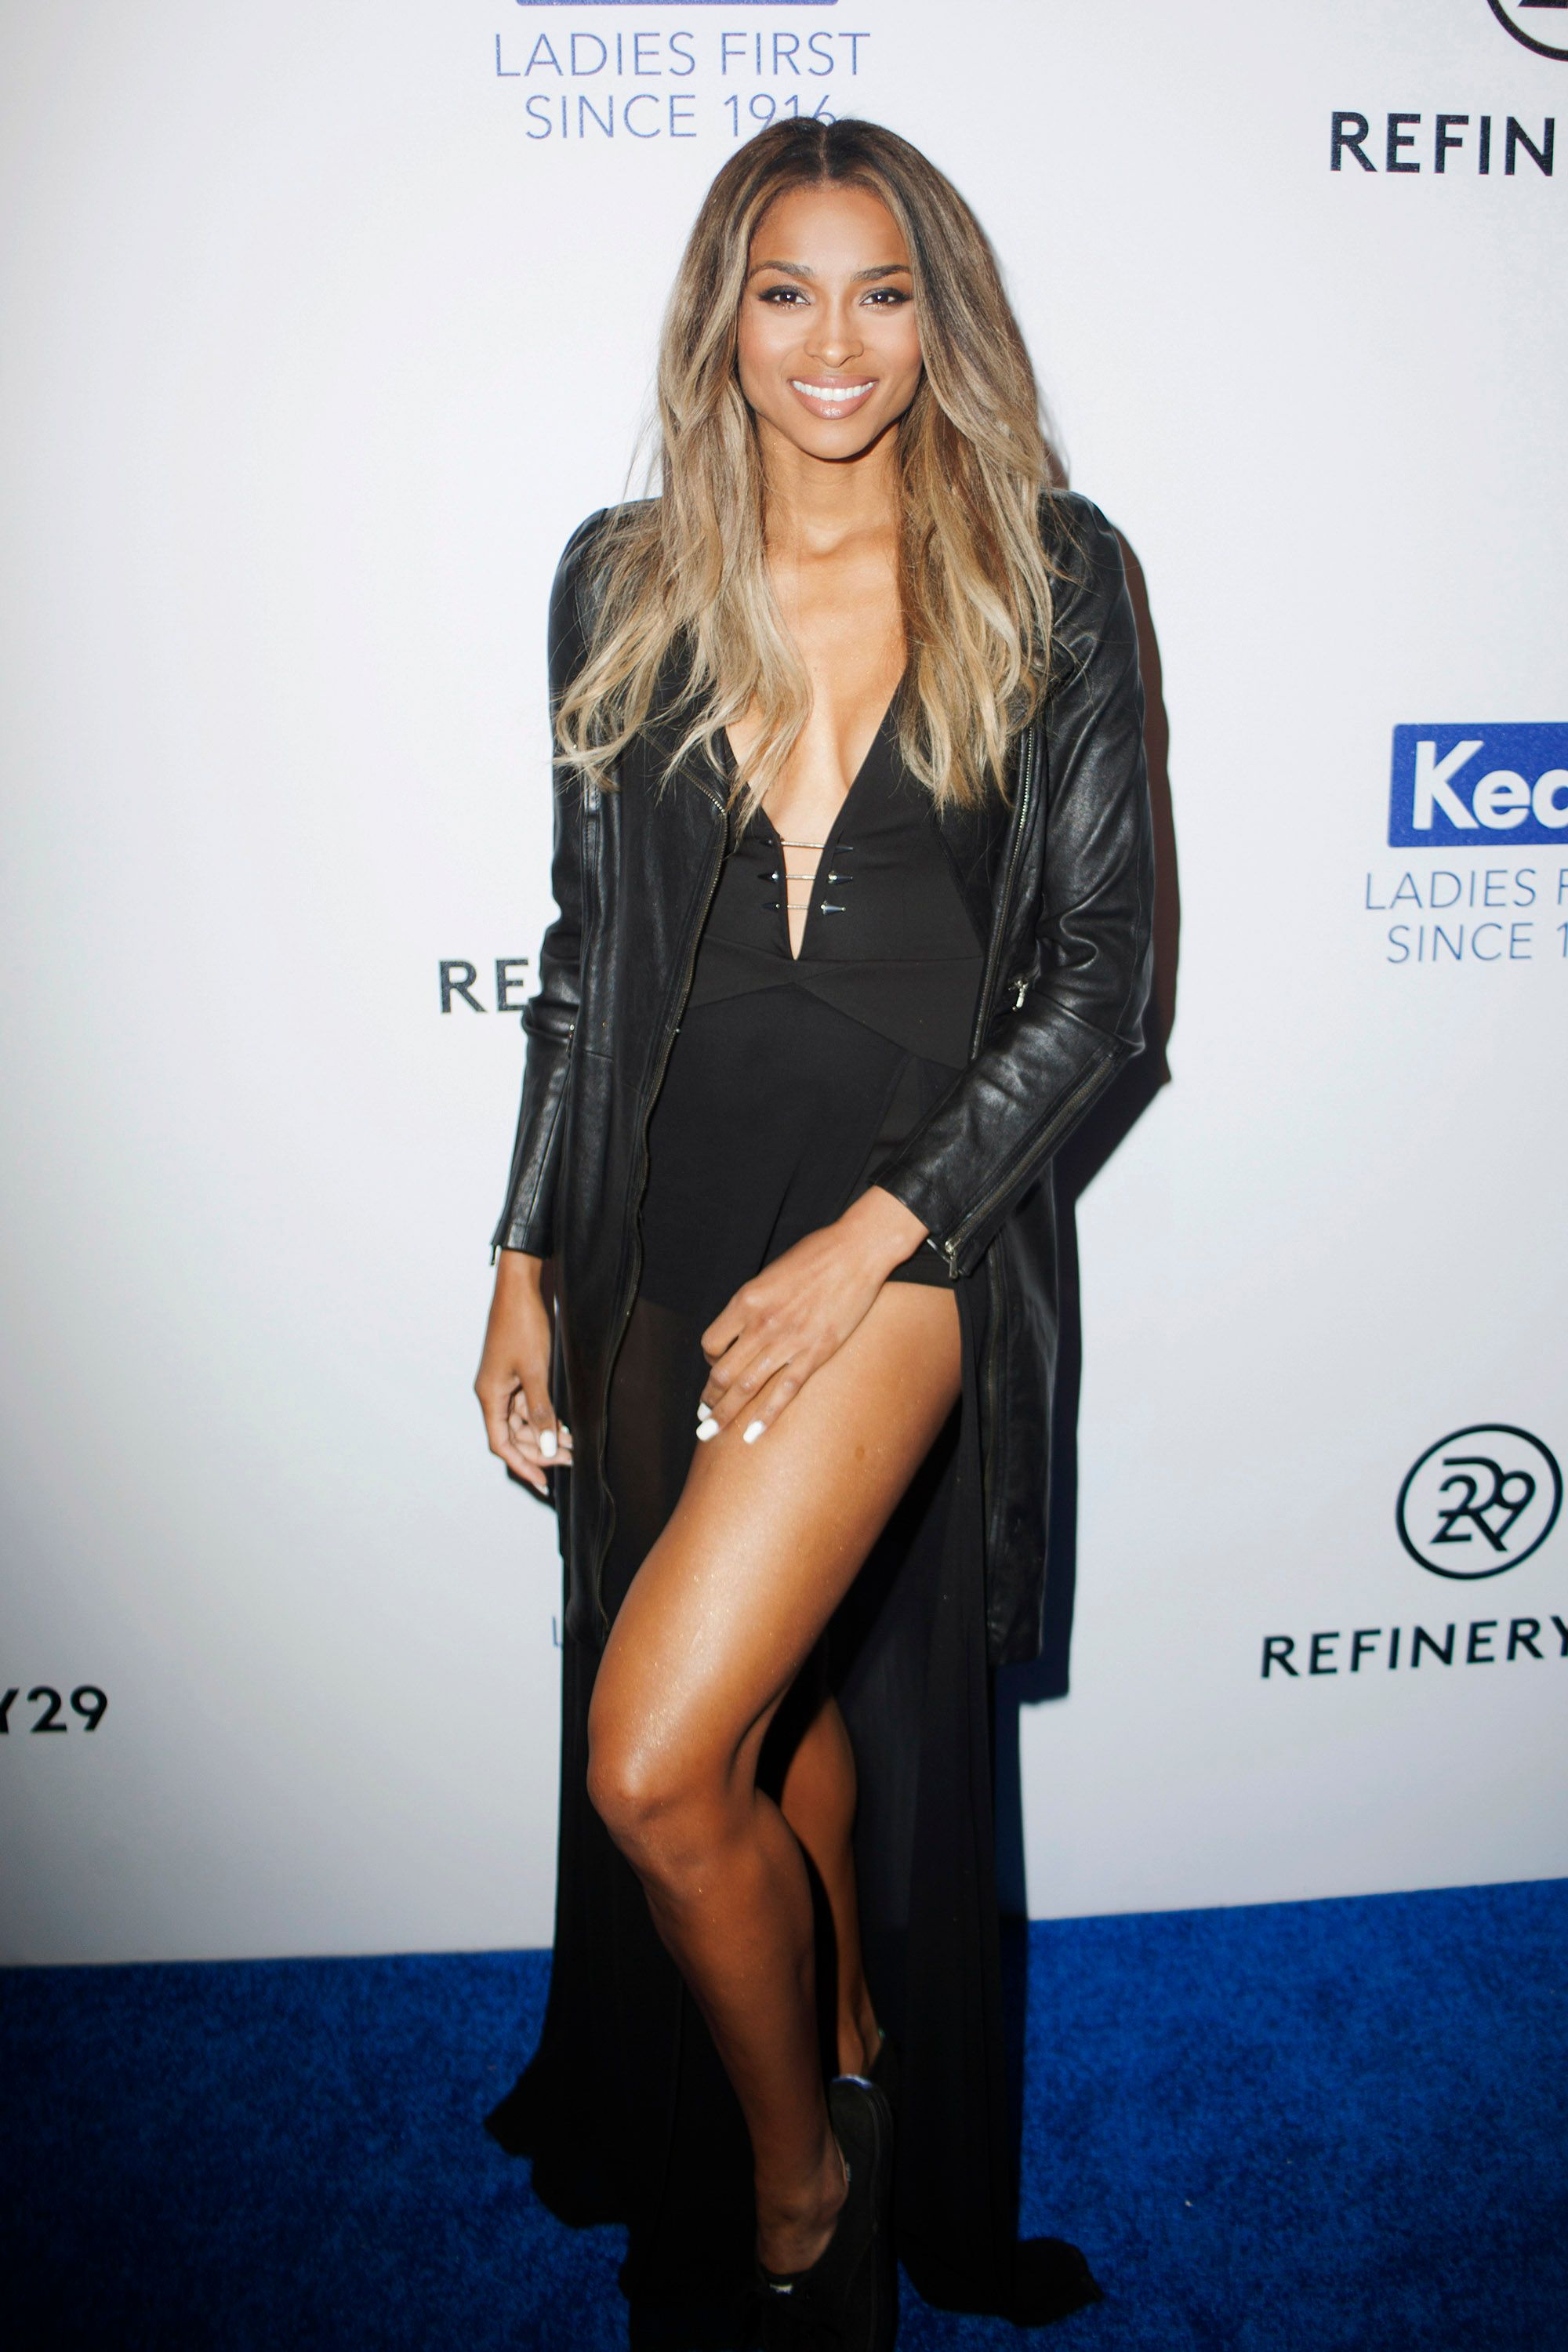 Ciara during the Keds Centennial Celebration at Center548 on February 10, 2016 in New York City. | Source: Getty Images